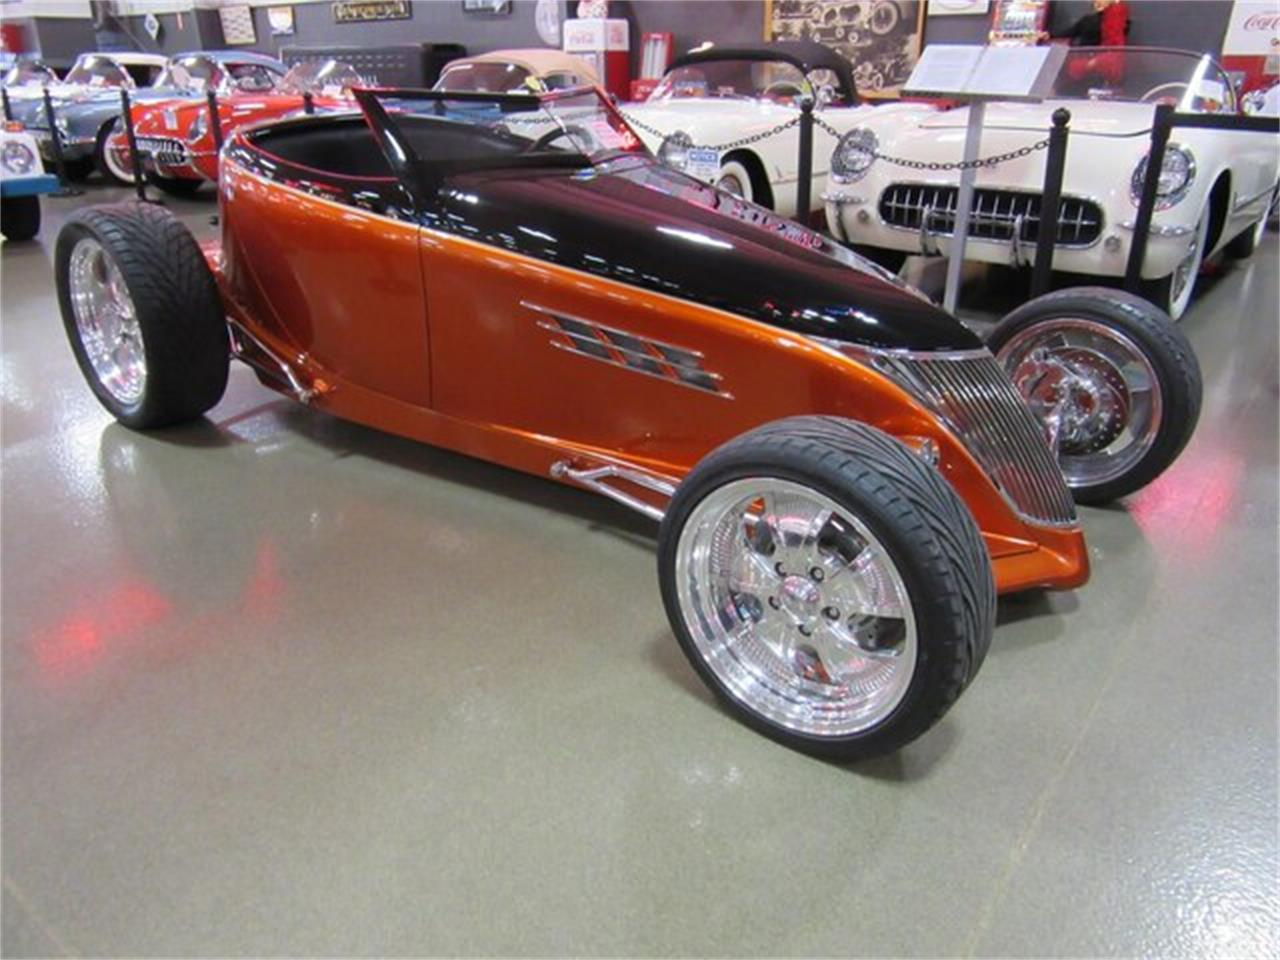 2006 Custom Roadster for sale in Greenwood, IN